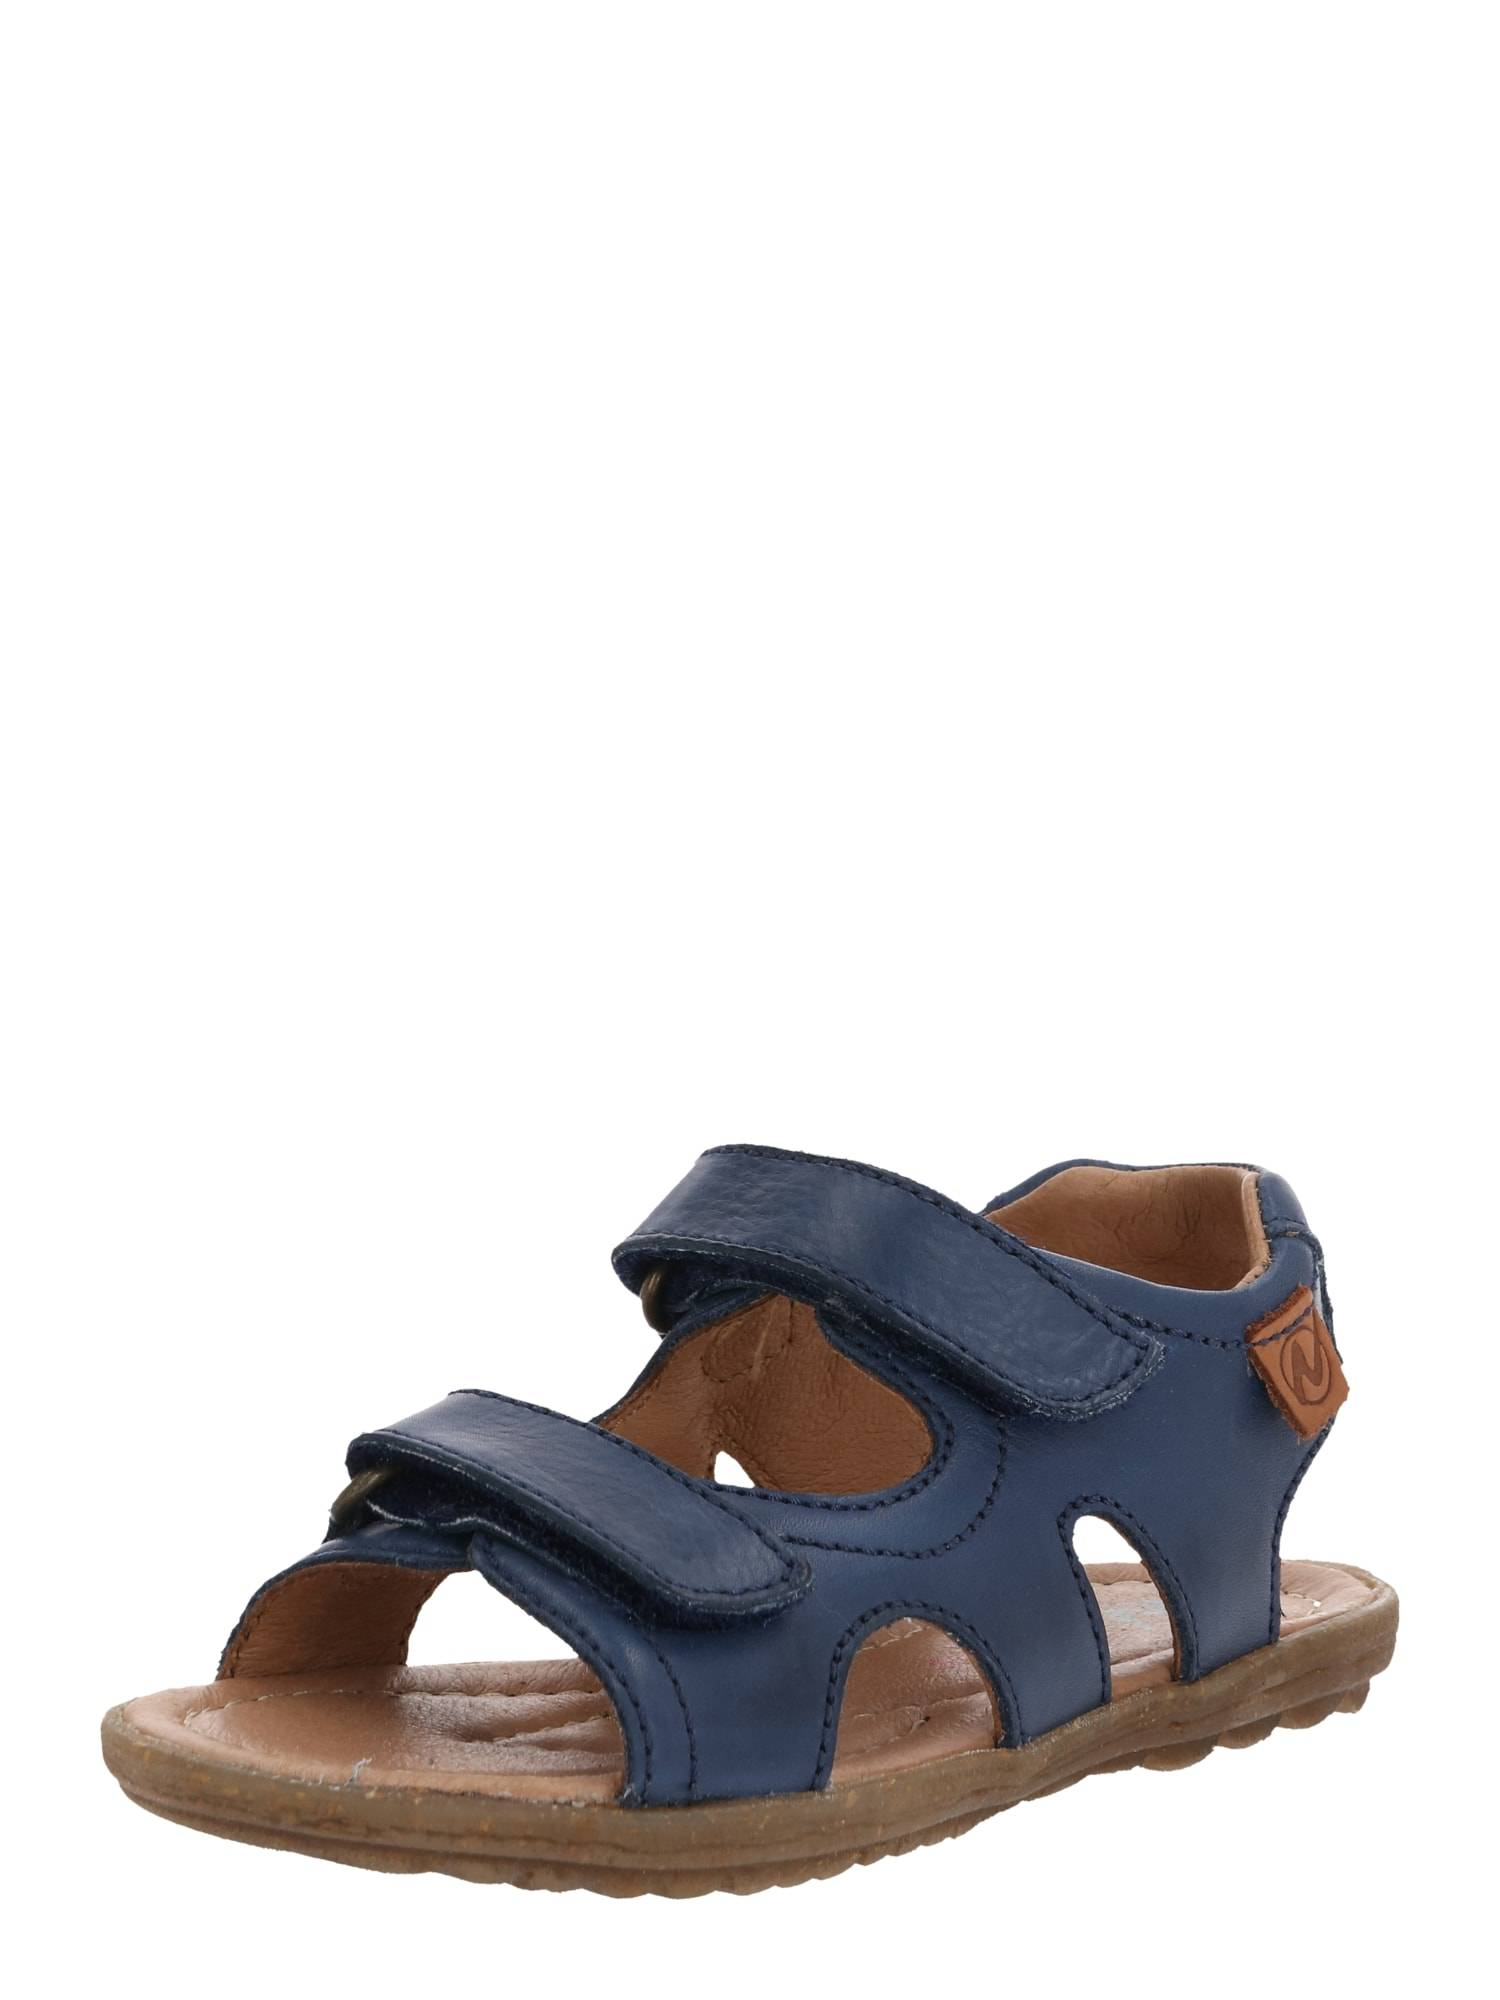 NATURINO Chaussures ouvertes 'Sky'  - Bleu - Taille: 30 - boy